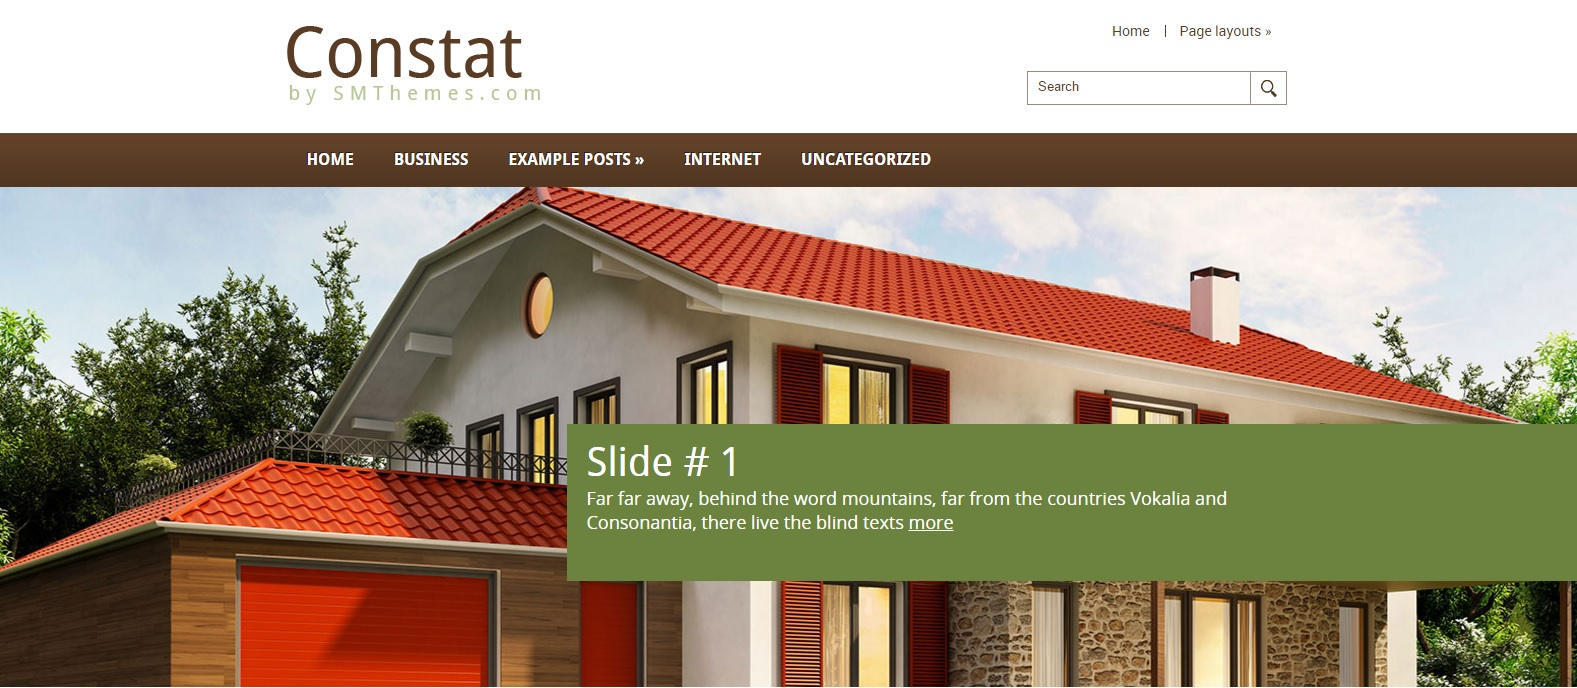 Constat | Free WordPress Template